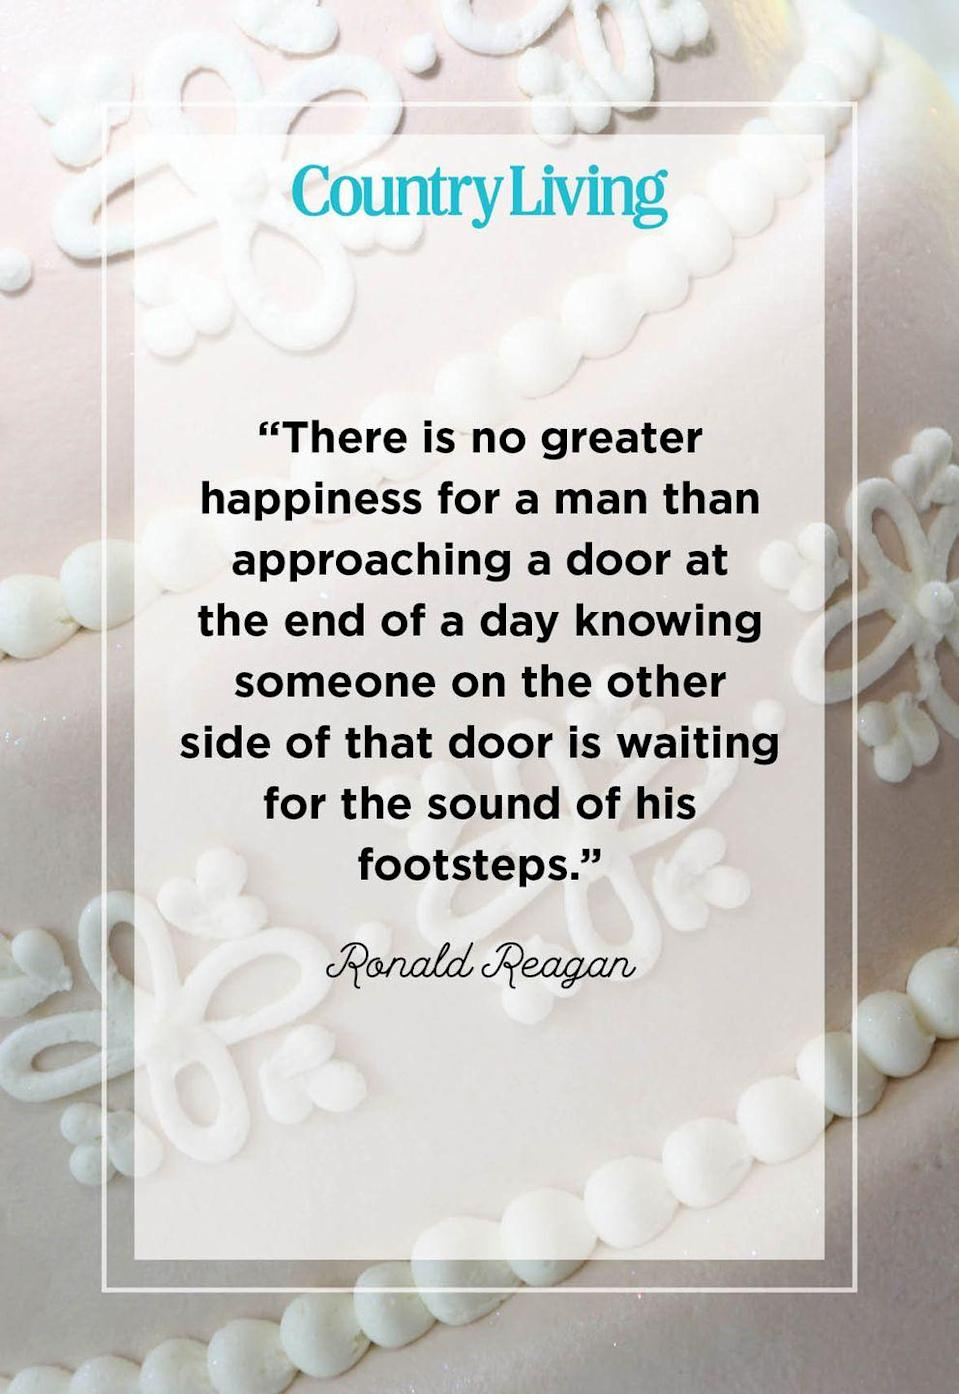 """<p>""""There is no greater happiness for a man than approaching a door at the end of a day knowing someone on the other side of that door is waiting for the sound of his footsteps.""""</p>"""